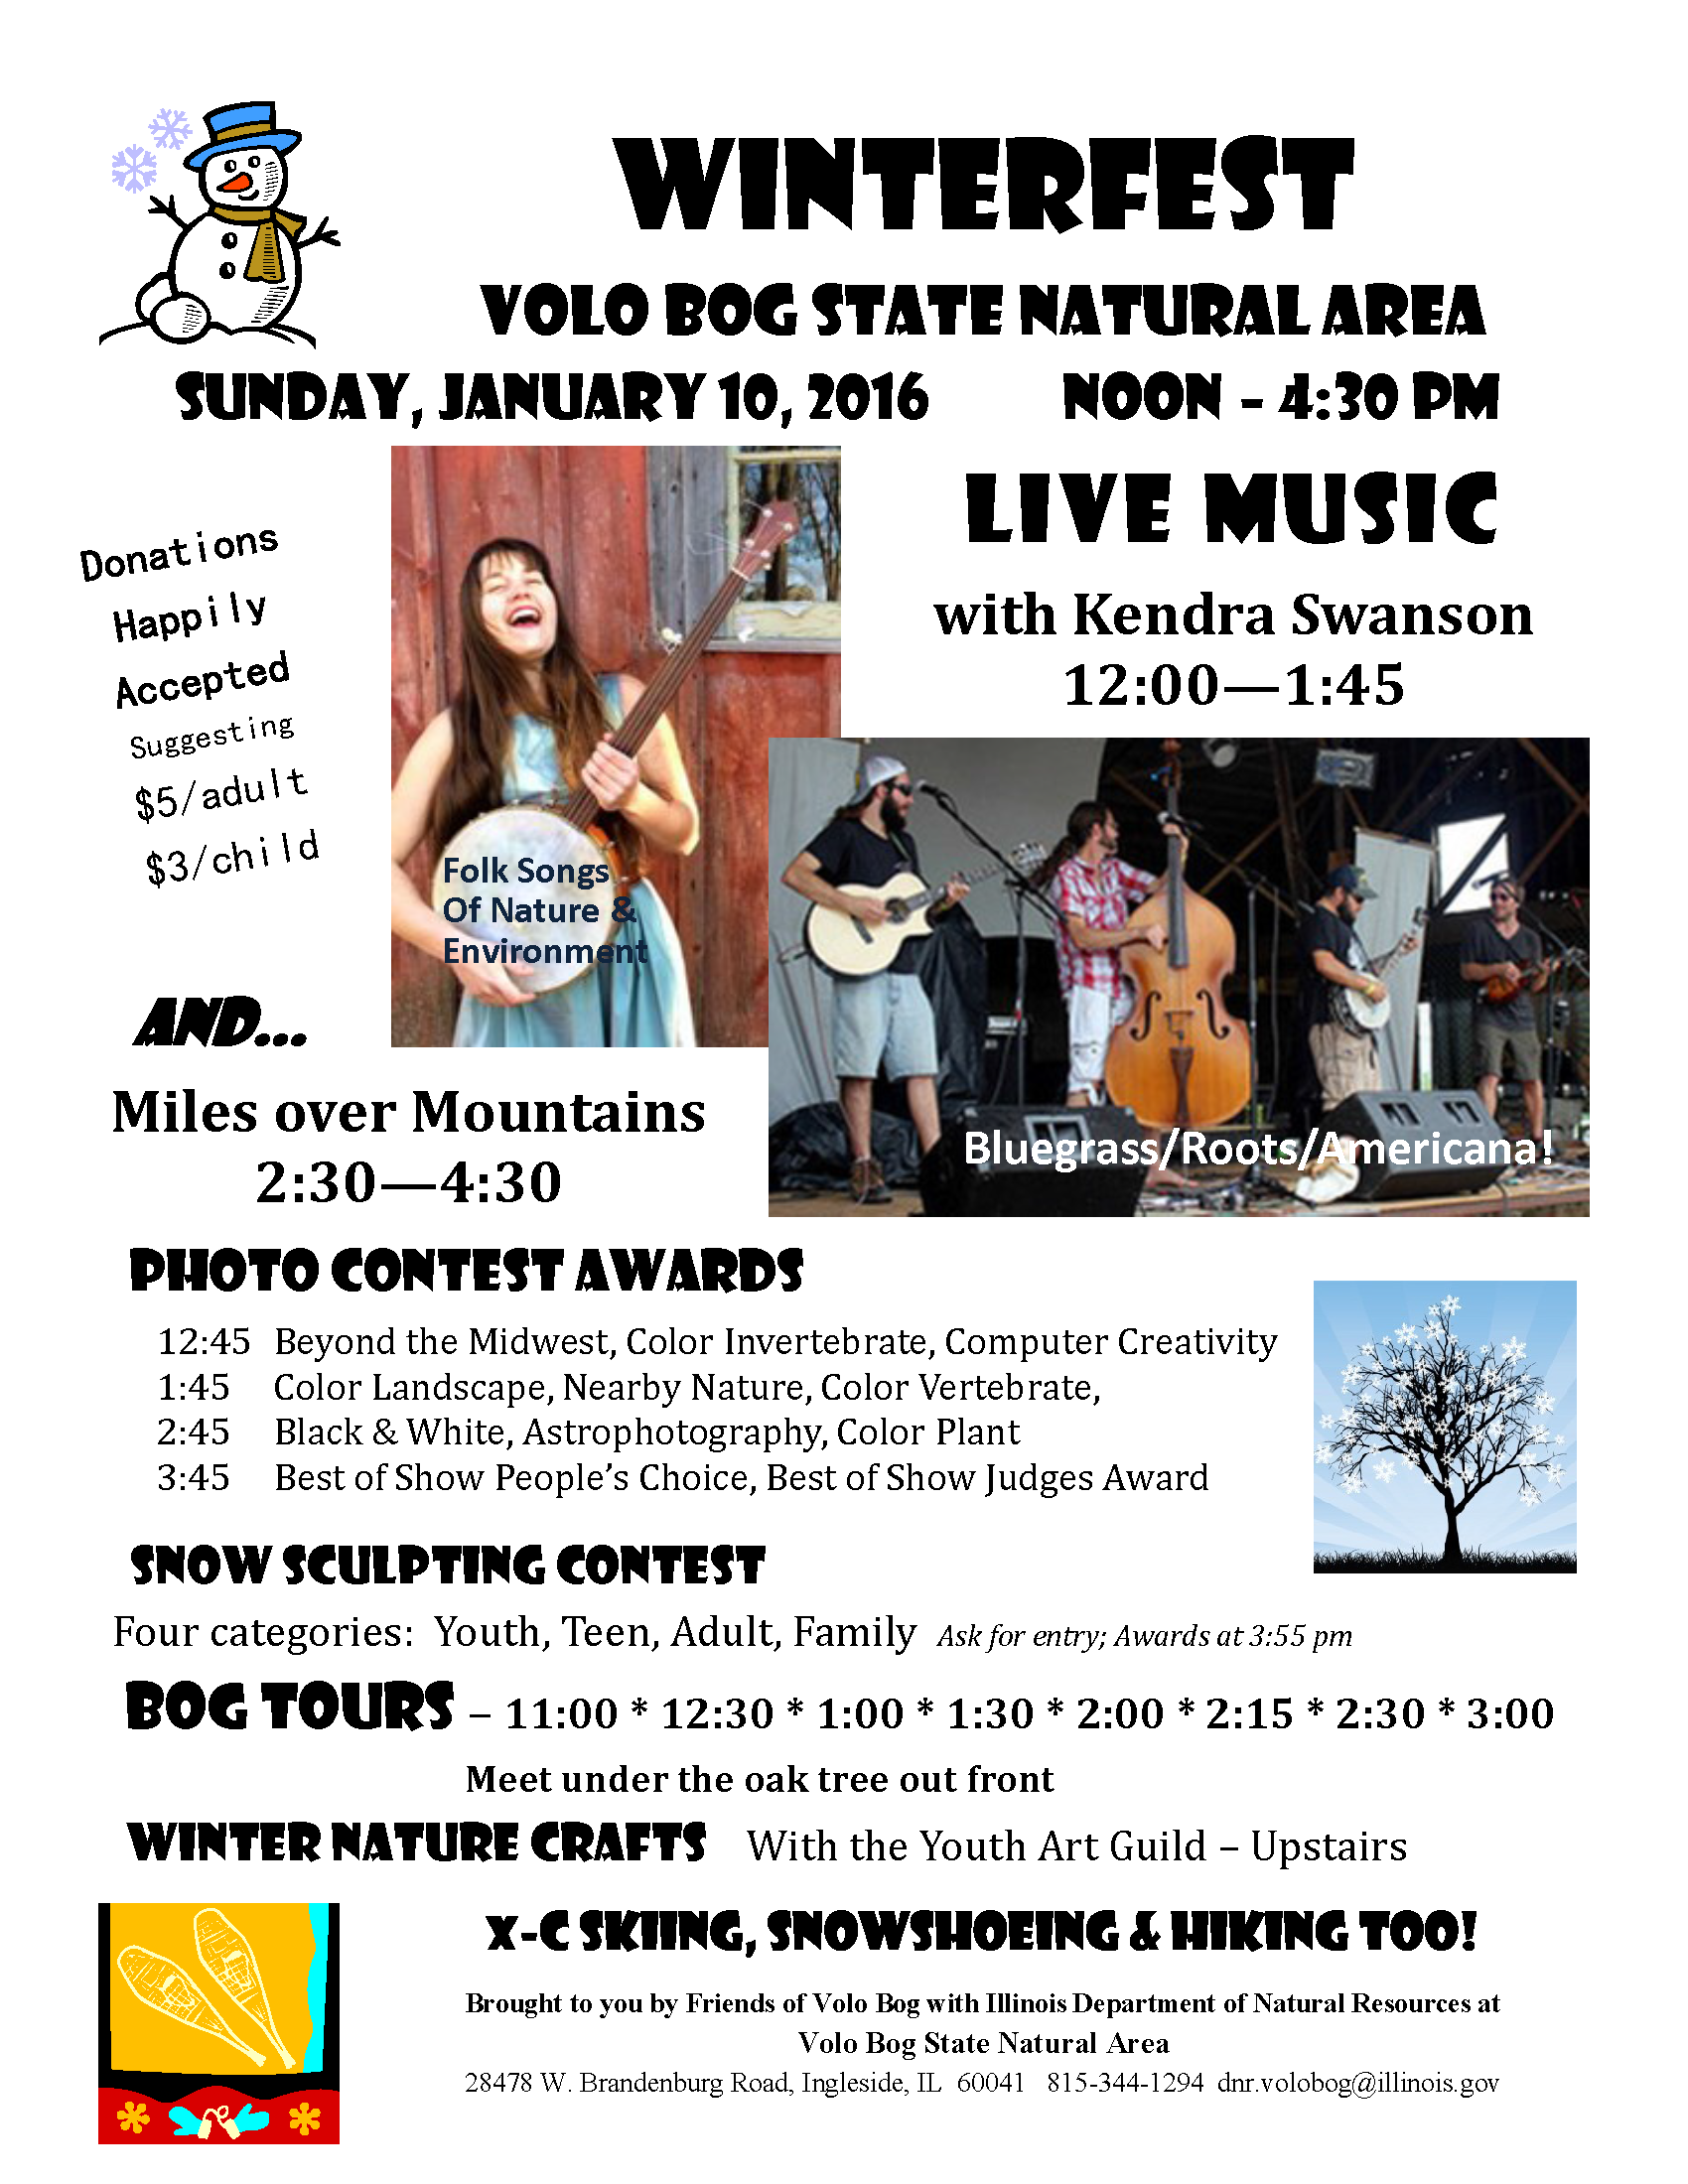 WinterFest 2016 at Volo Bog Flyer